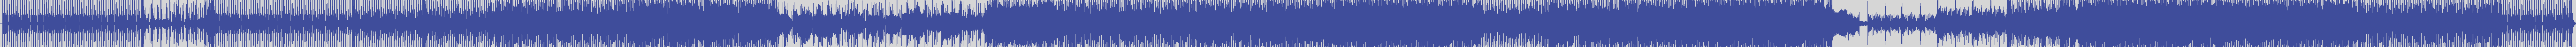 just_digital_records [JS1351] J- Funk - See the Light [E 1] audio wave form